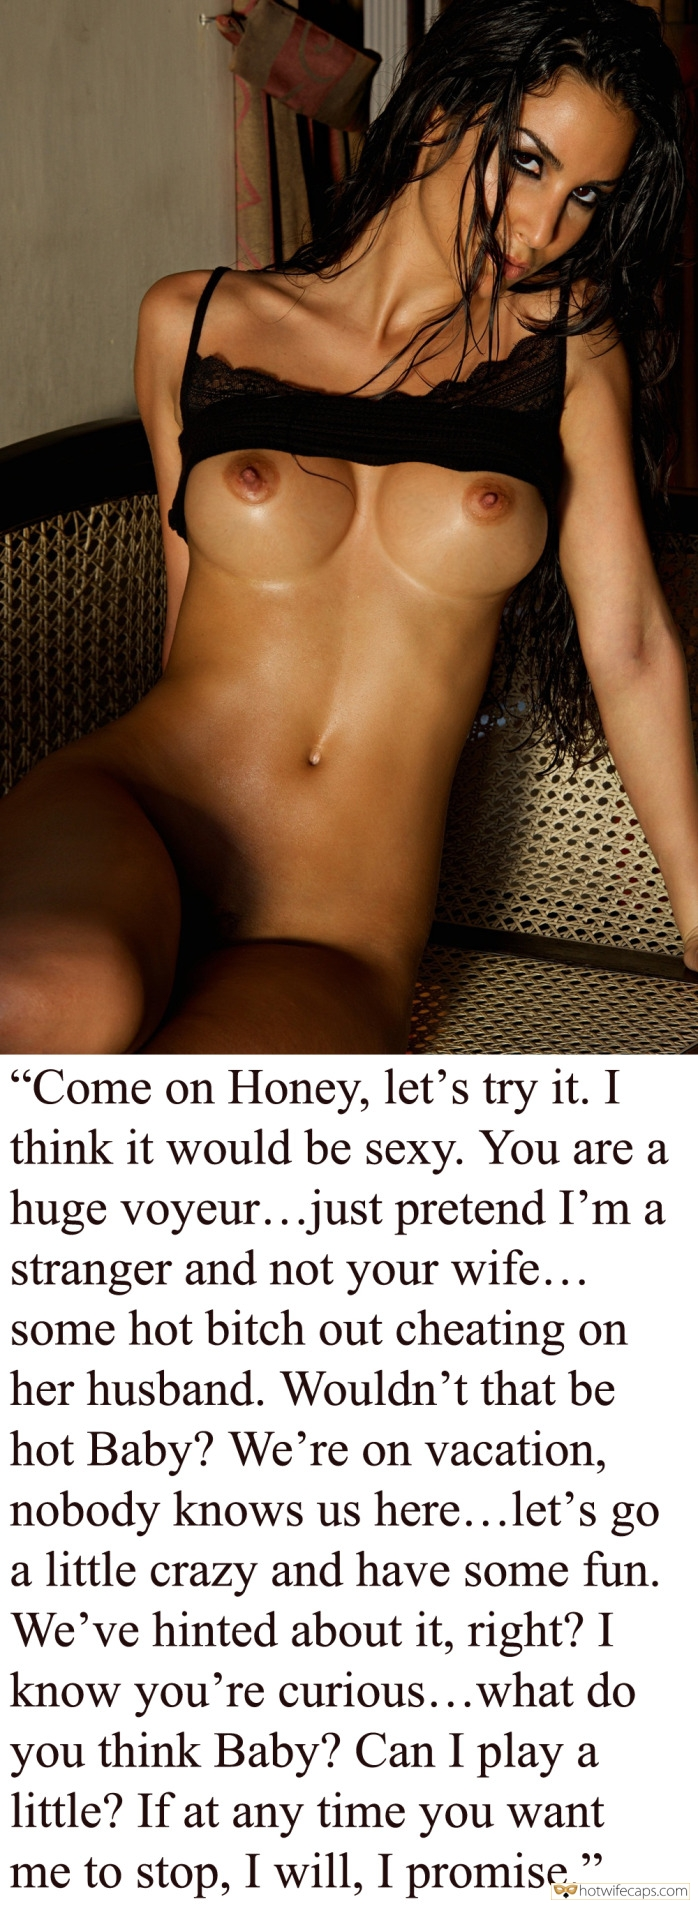 "Vacation Dirty Talk hotwife caption: ""Come on Honey, let's try it. I think it would be sexy. You are a huge voyeur… just pretend I'm a stranger and not your wife… some hot bitch out cheating on her husband. Wouldn't that be hot Baby? We're..."